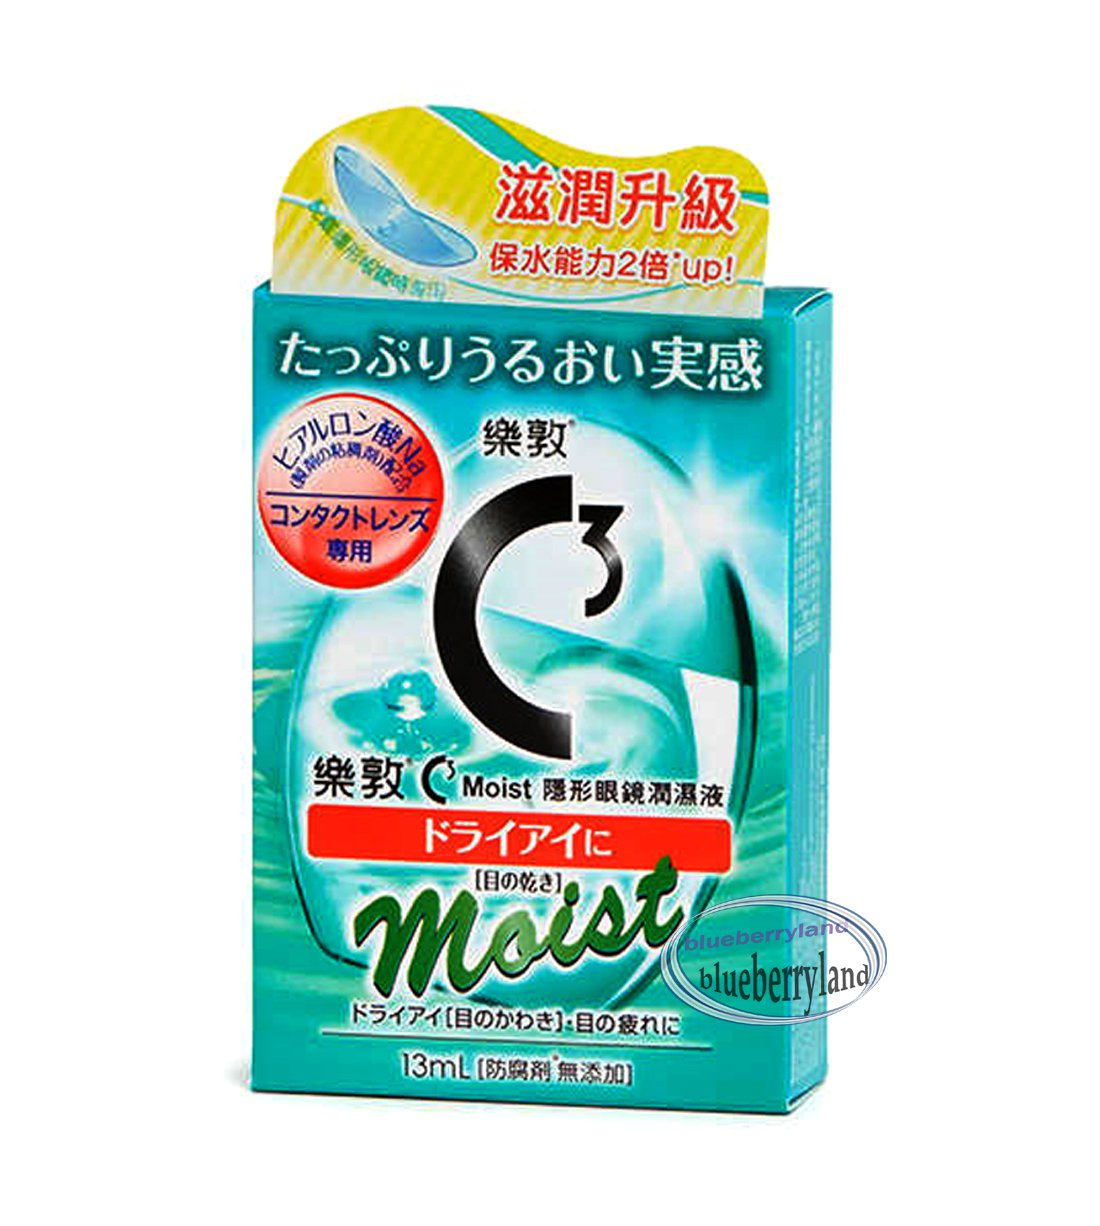 ROHTO C3 MOIST Eyedrops eye drops Contact Lens Moisturizer Relieve Tired Dry ladies eye care makeup